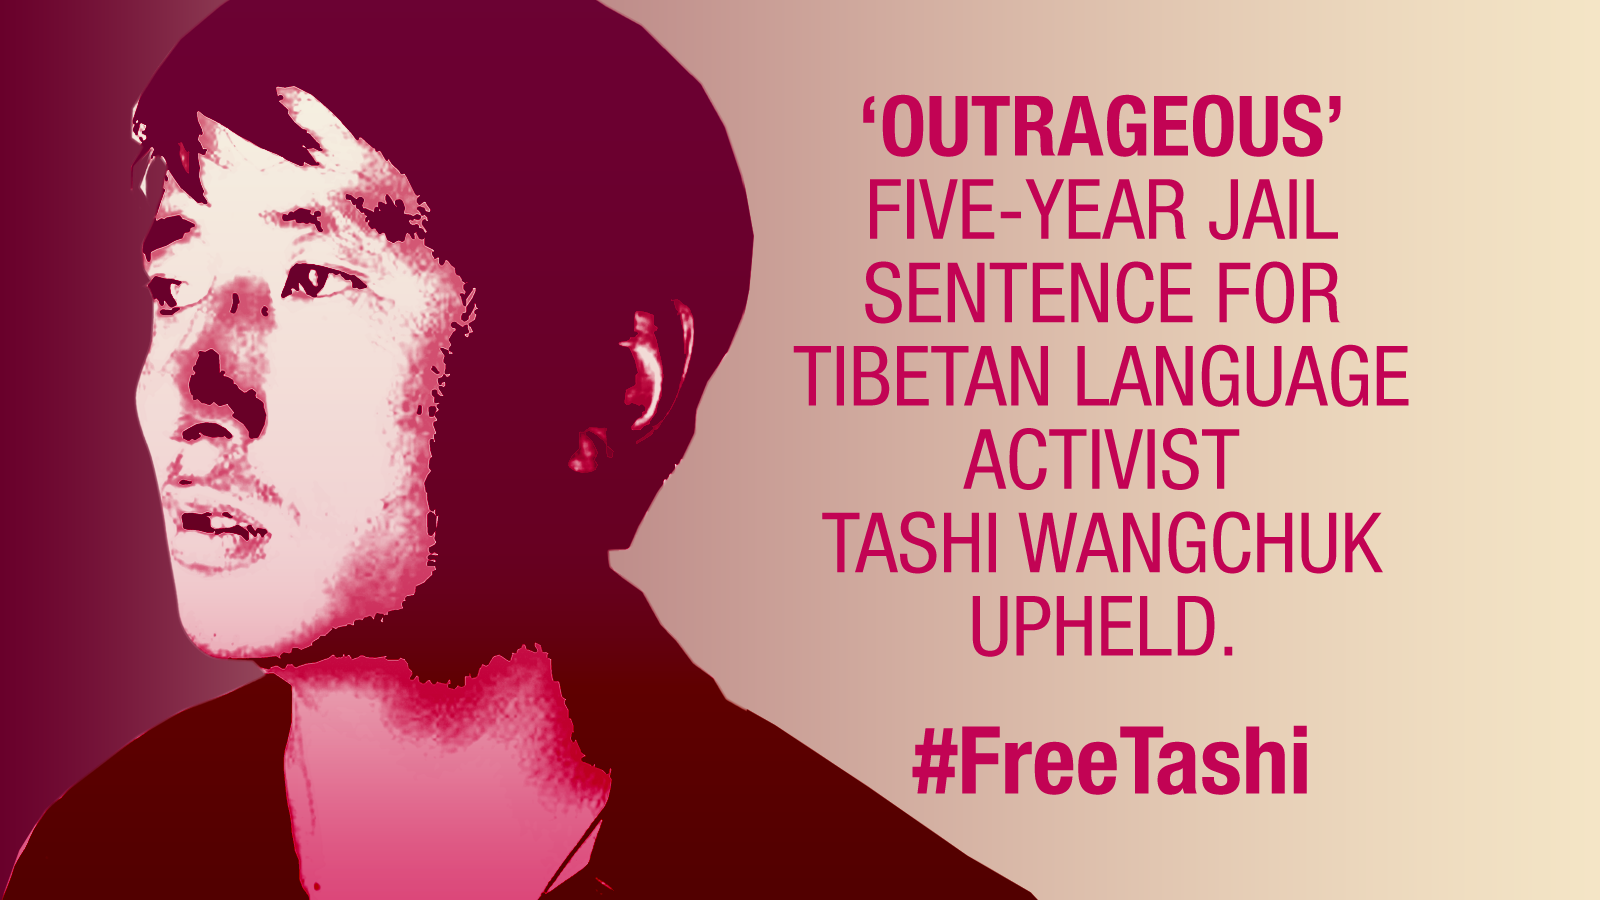 China Blocks Release Of Jailed Tibetan Rights Activist Tashi Wangchuk